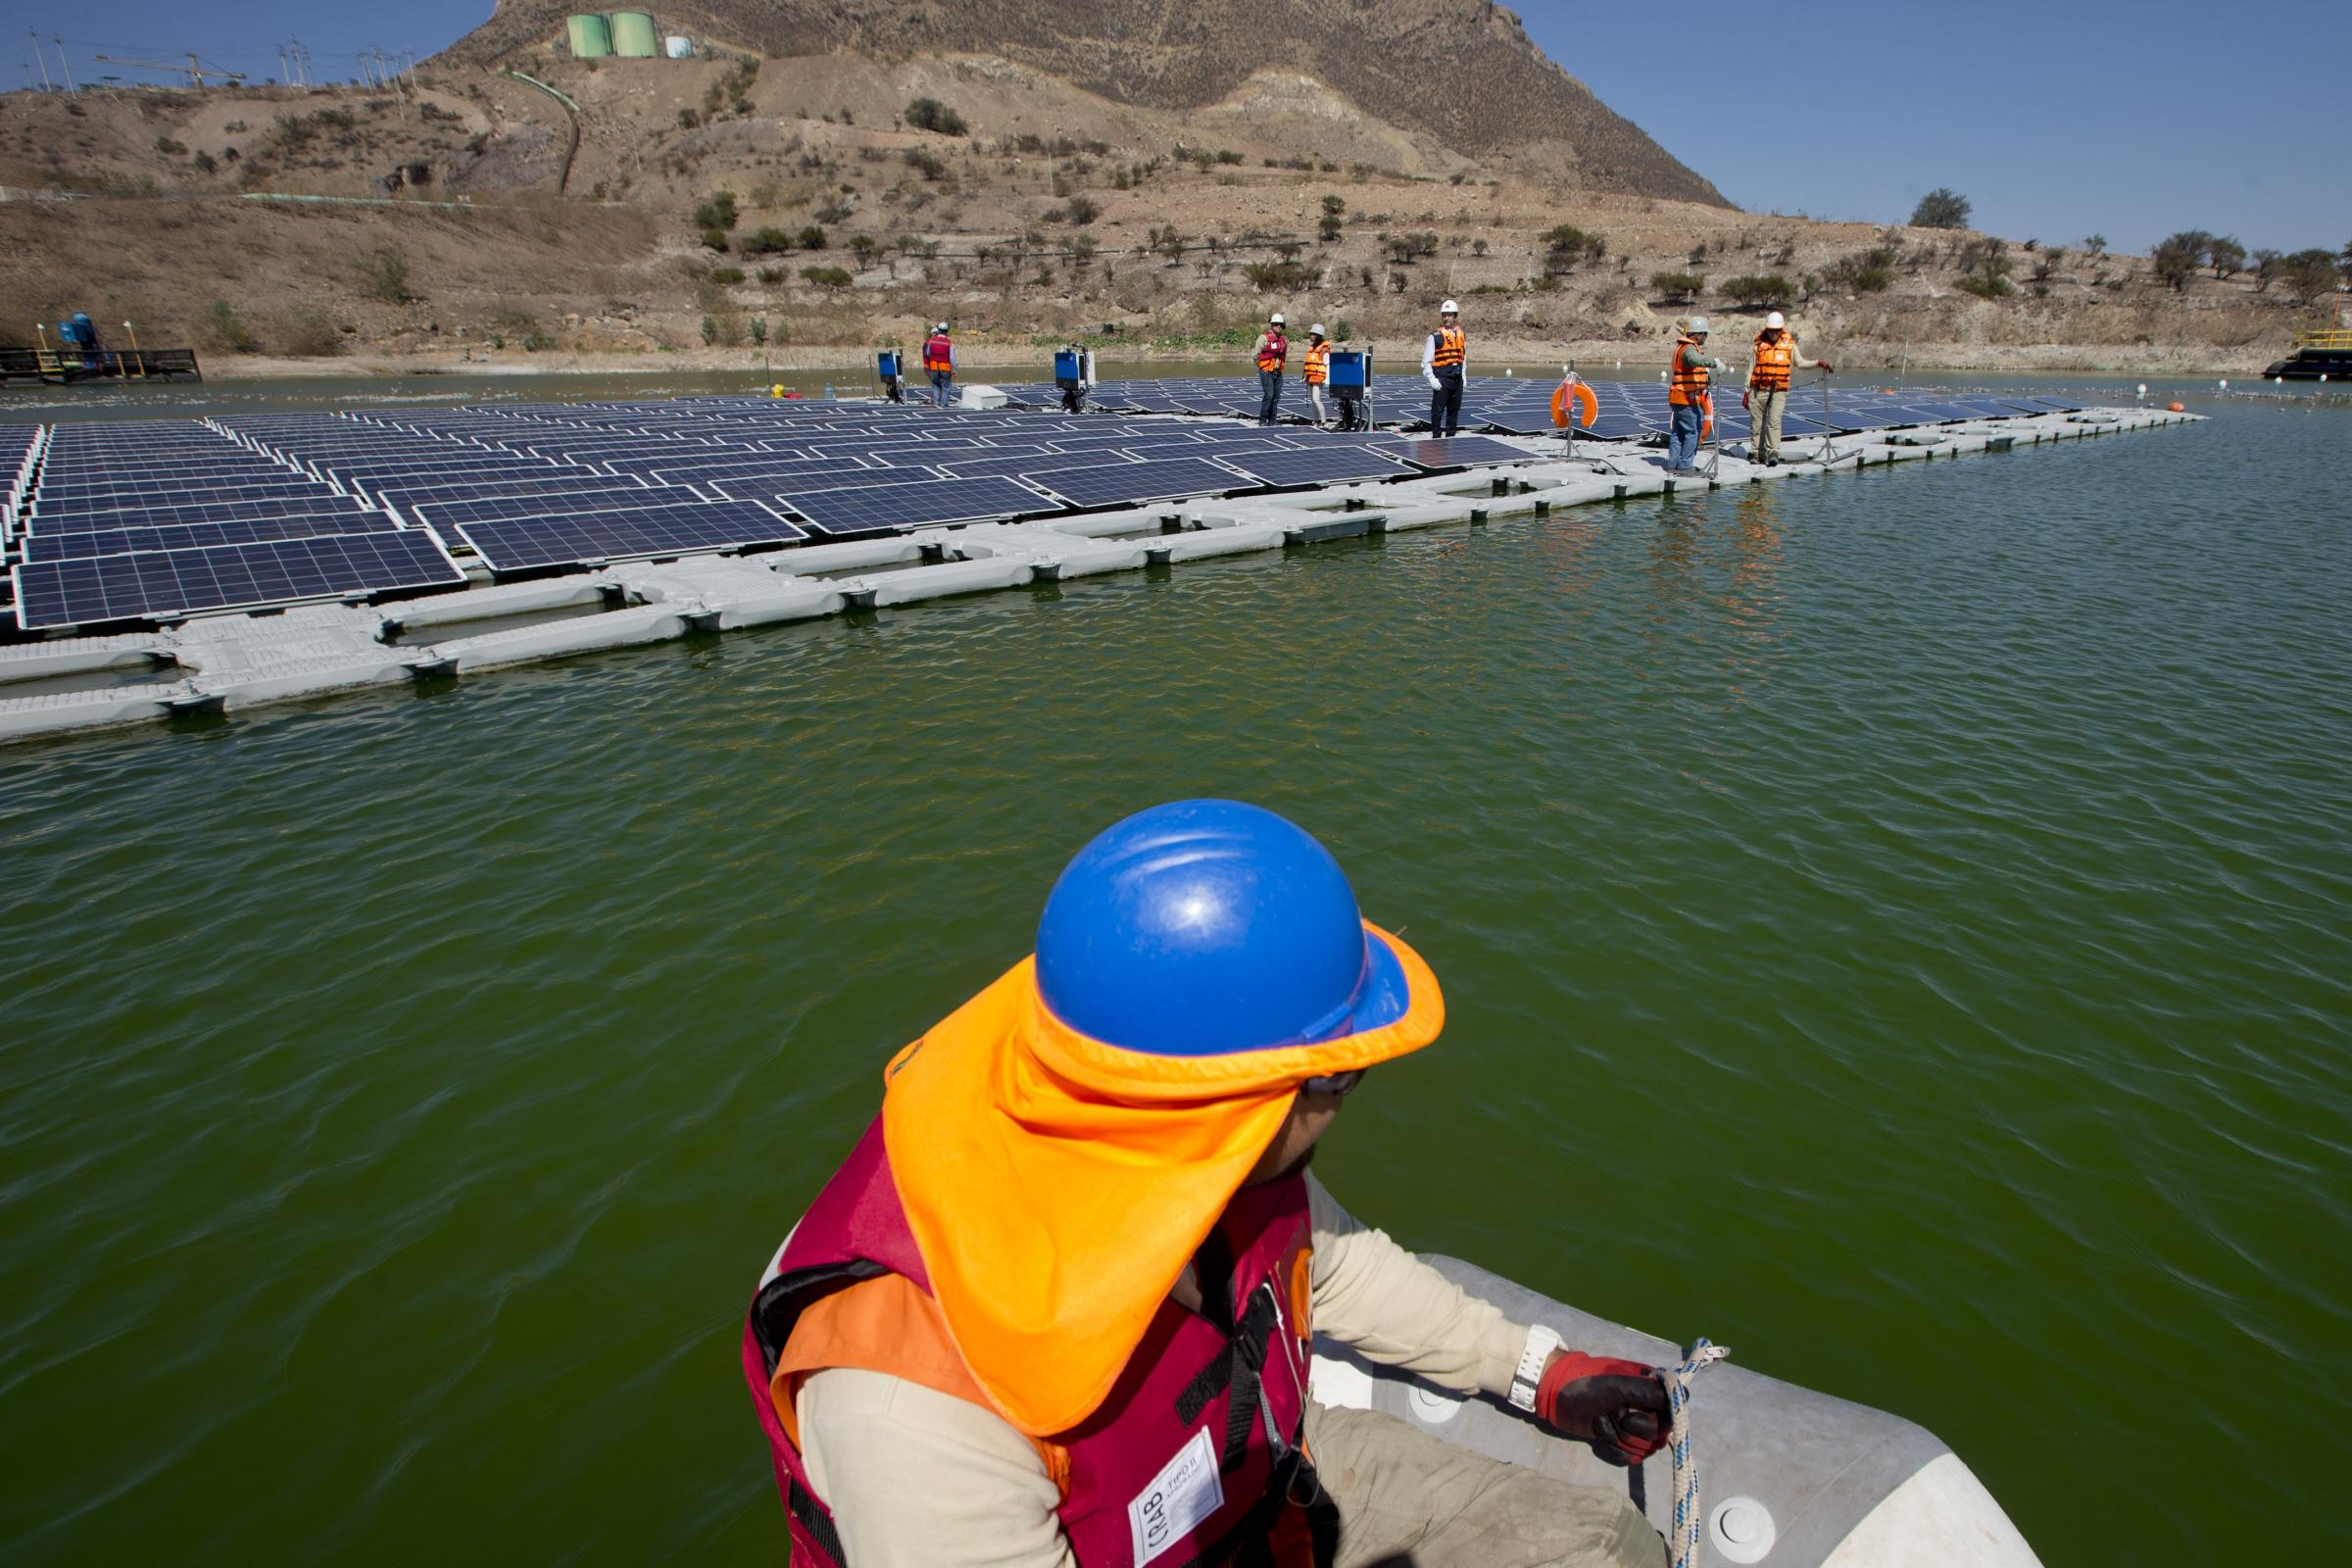 A worker on a boat approaches a floating island of solar panels